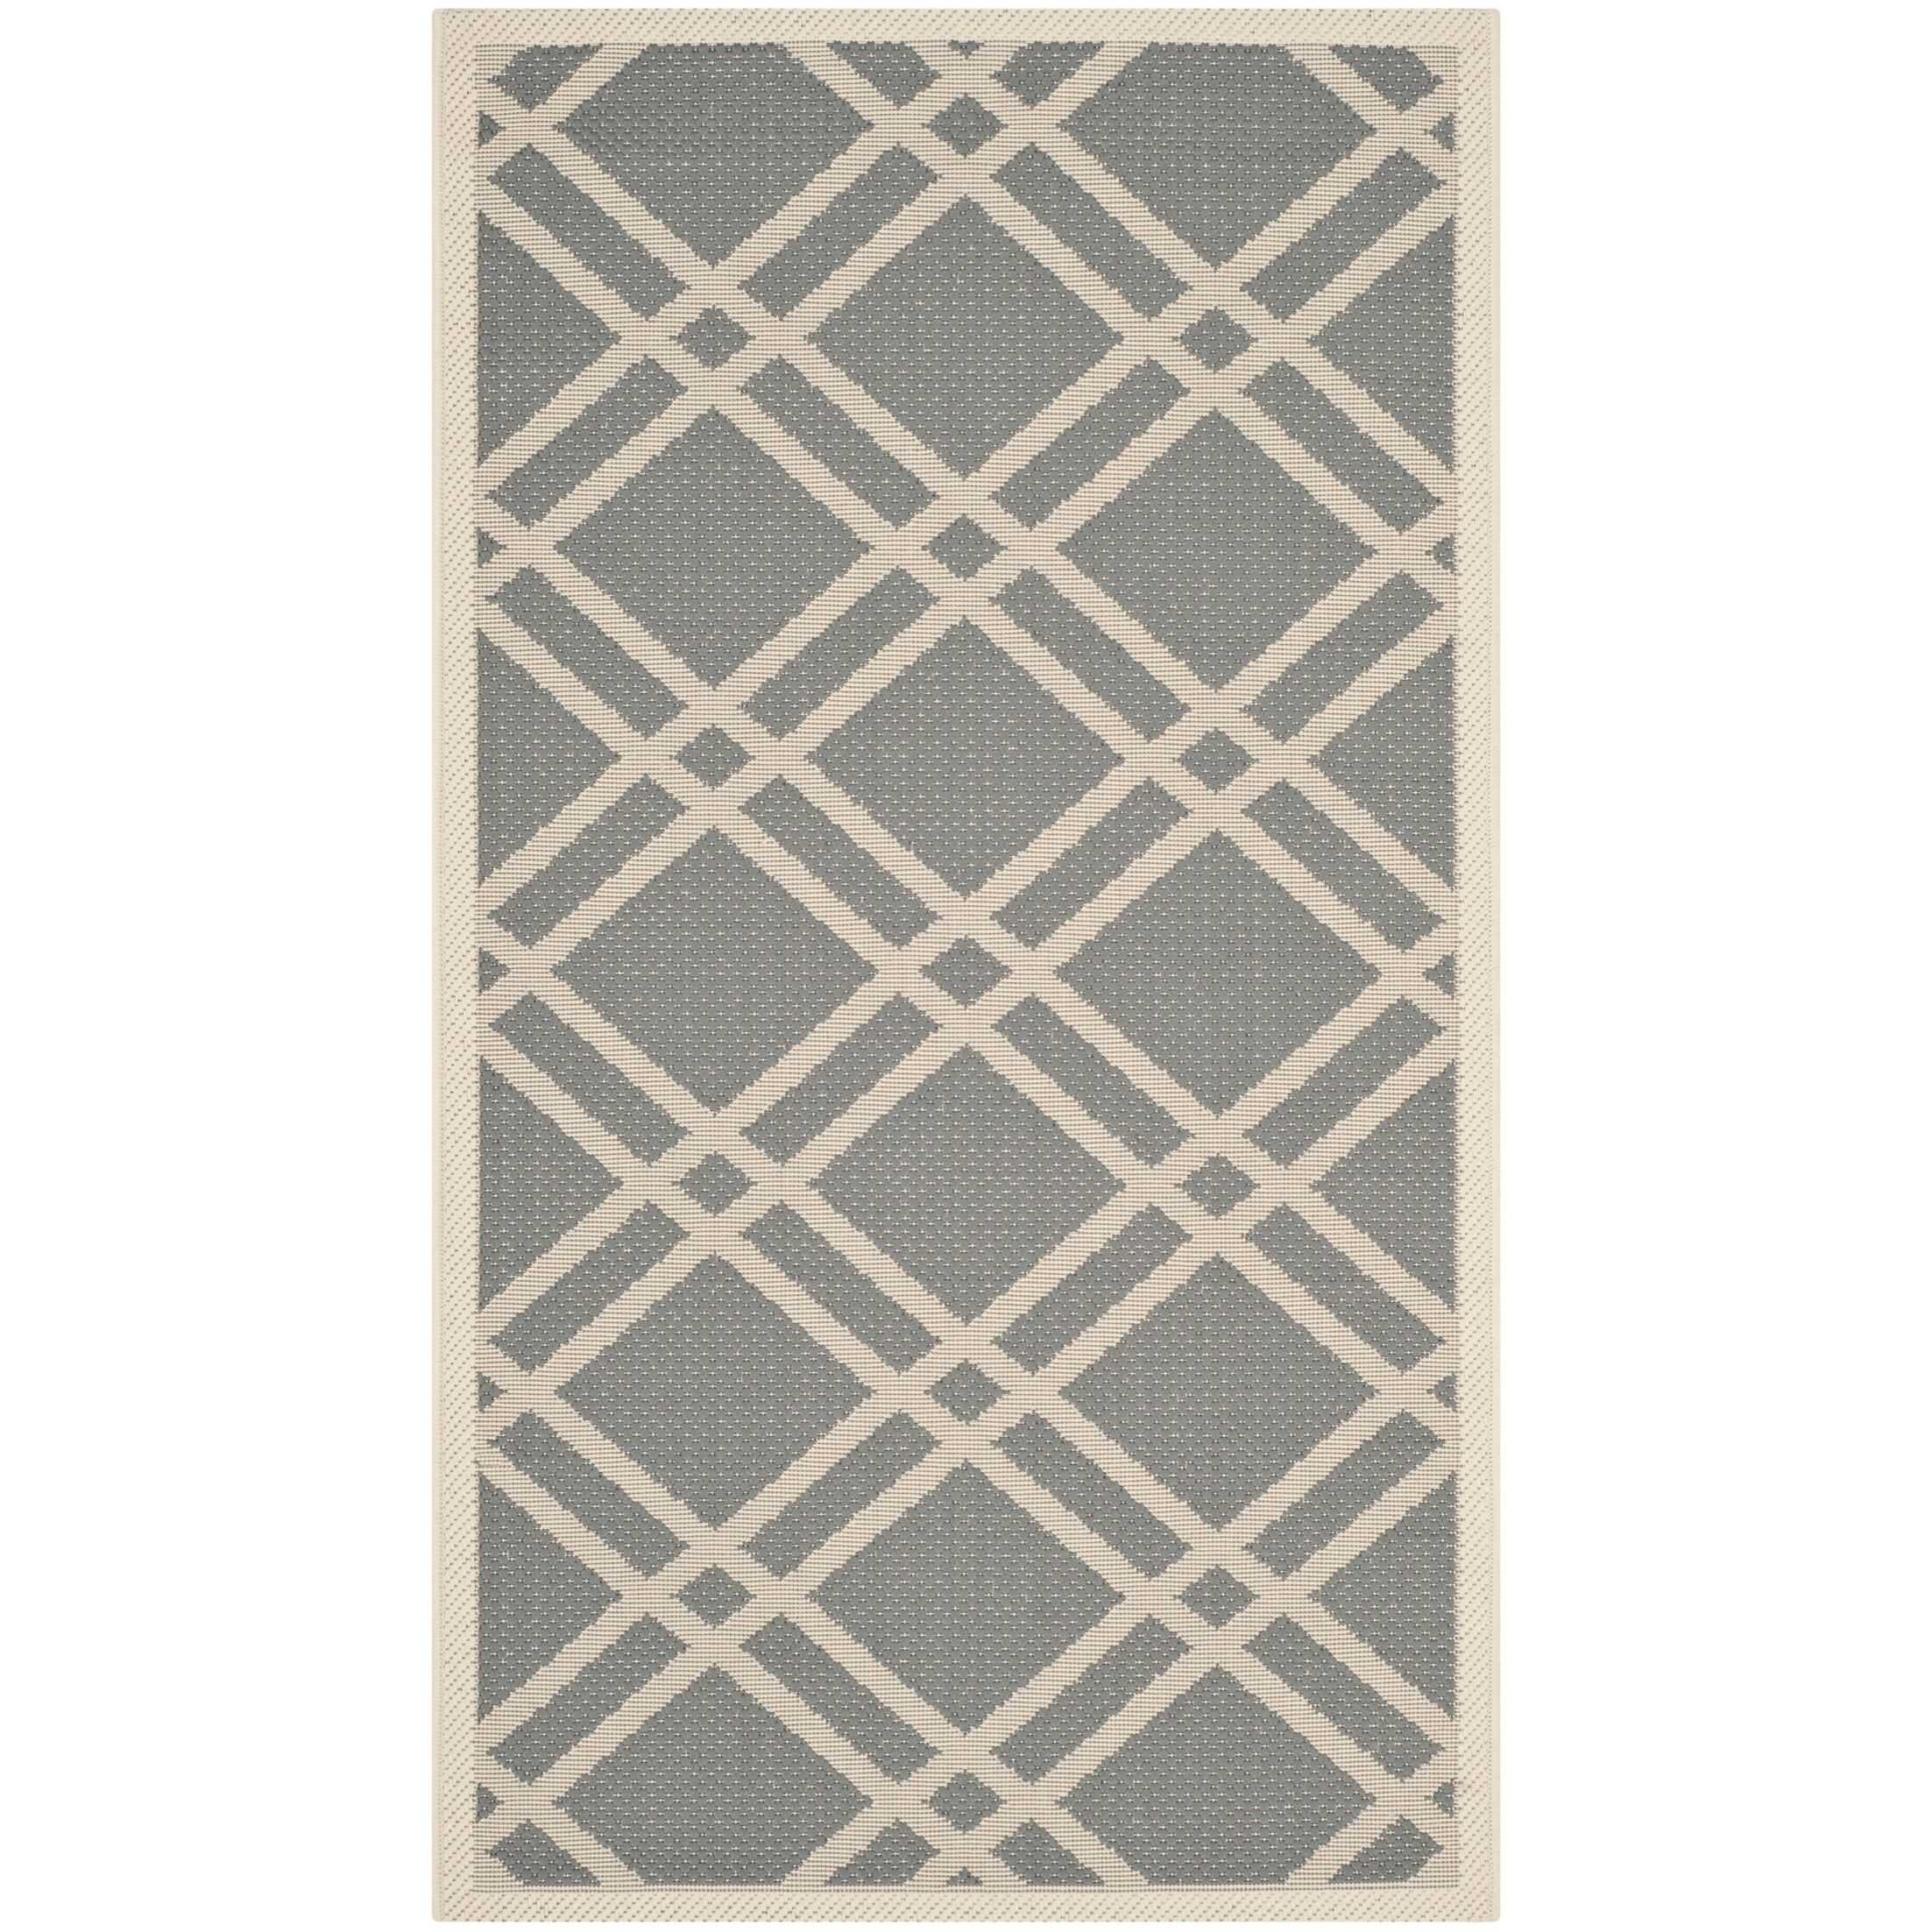 Short Gray/Ivory Indoor/Outdoor Area Rug Rug Size: Rectangle 9' x 12'